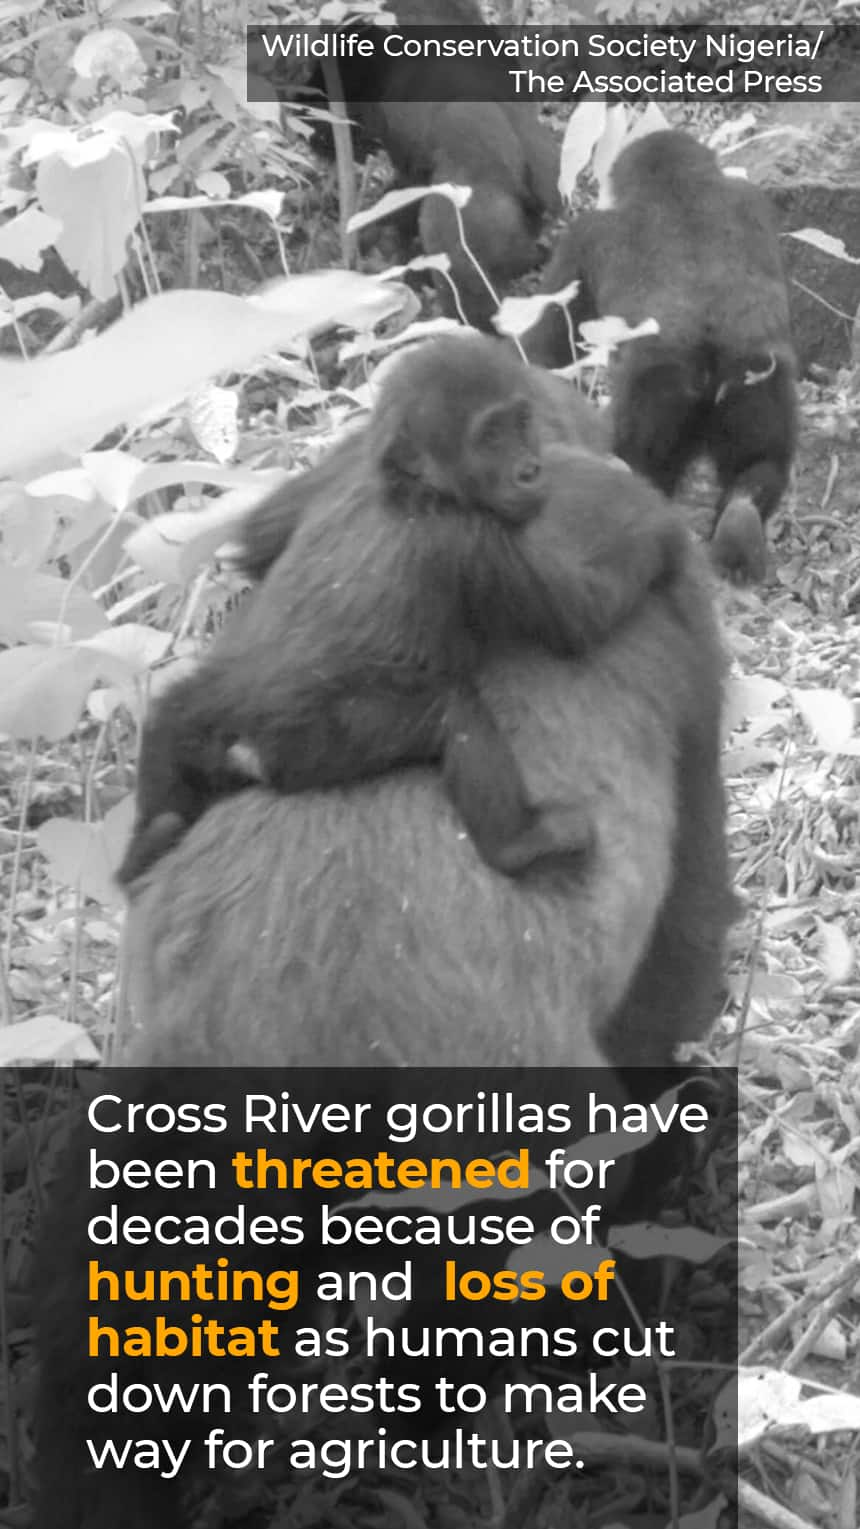 TEXT: Cross River gorillas have been threatened for decades because of hunting and  loss of habitat as humans cut down forests to make way for agriculture. IMAGE: Black and white photo of gorilla babies on their mamas' backs.